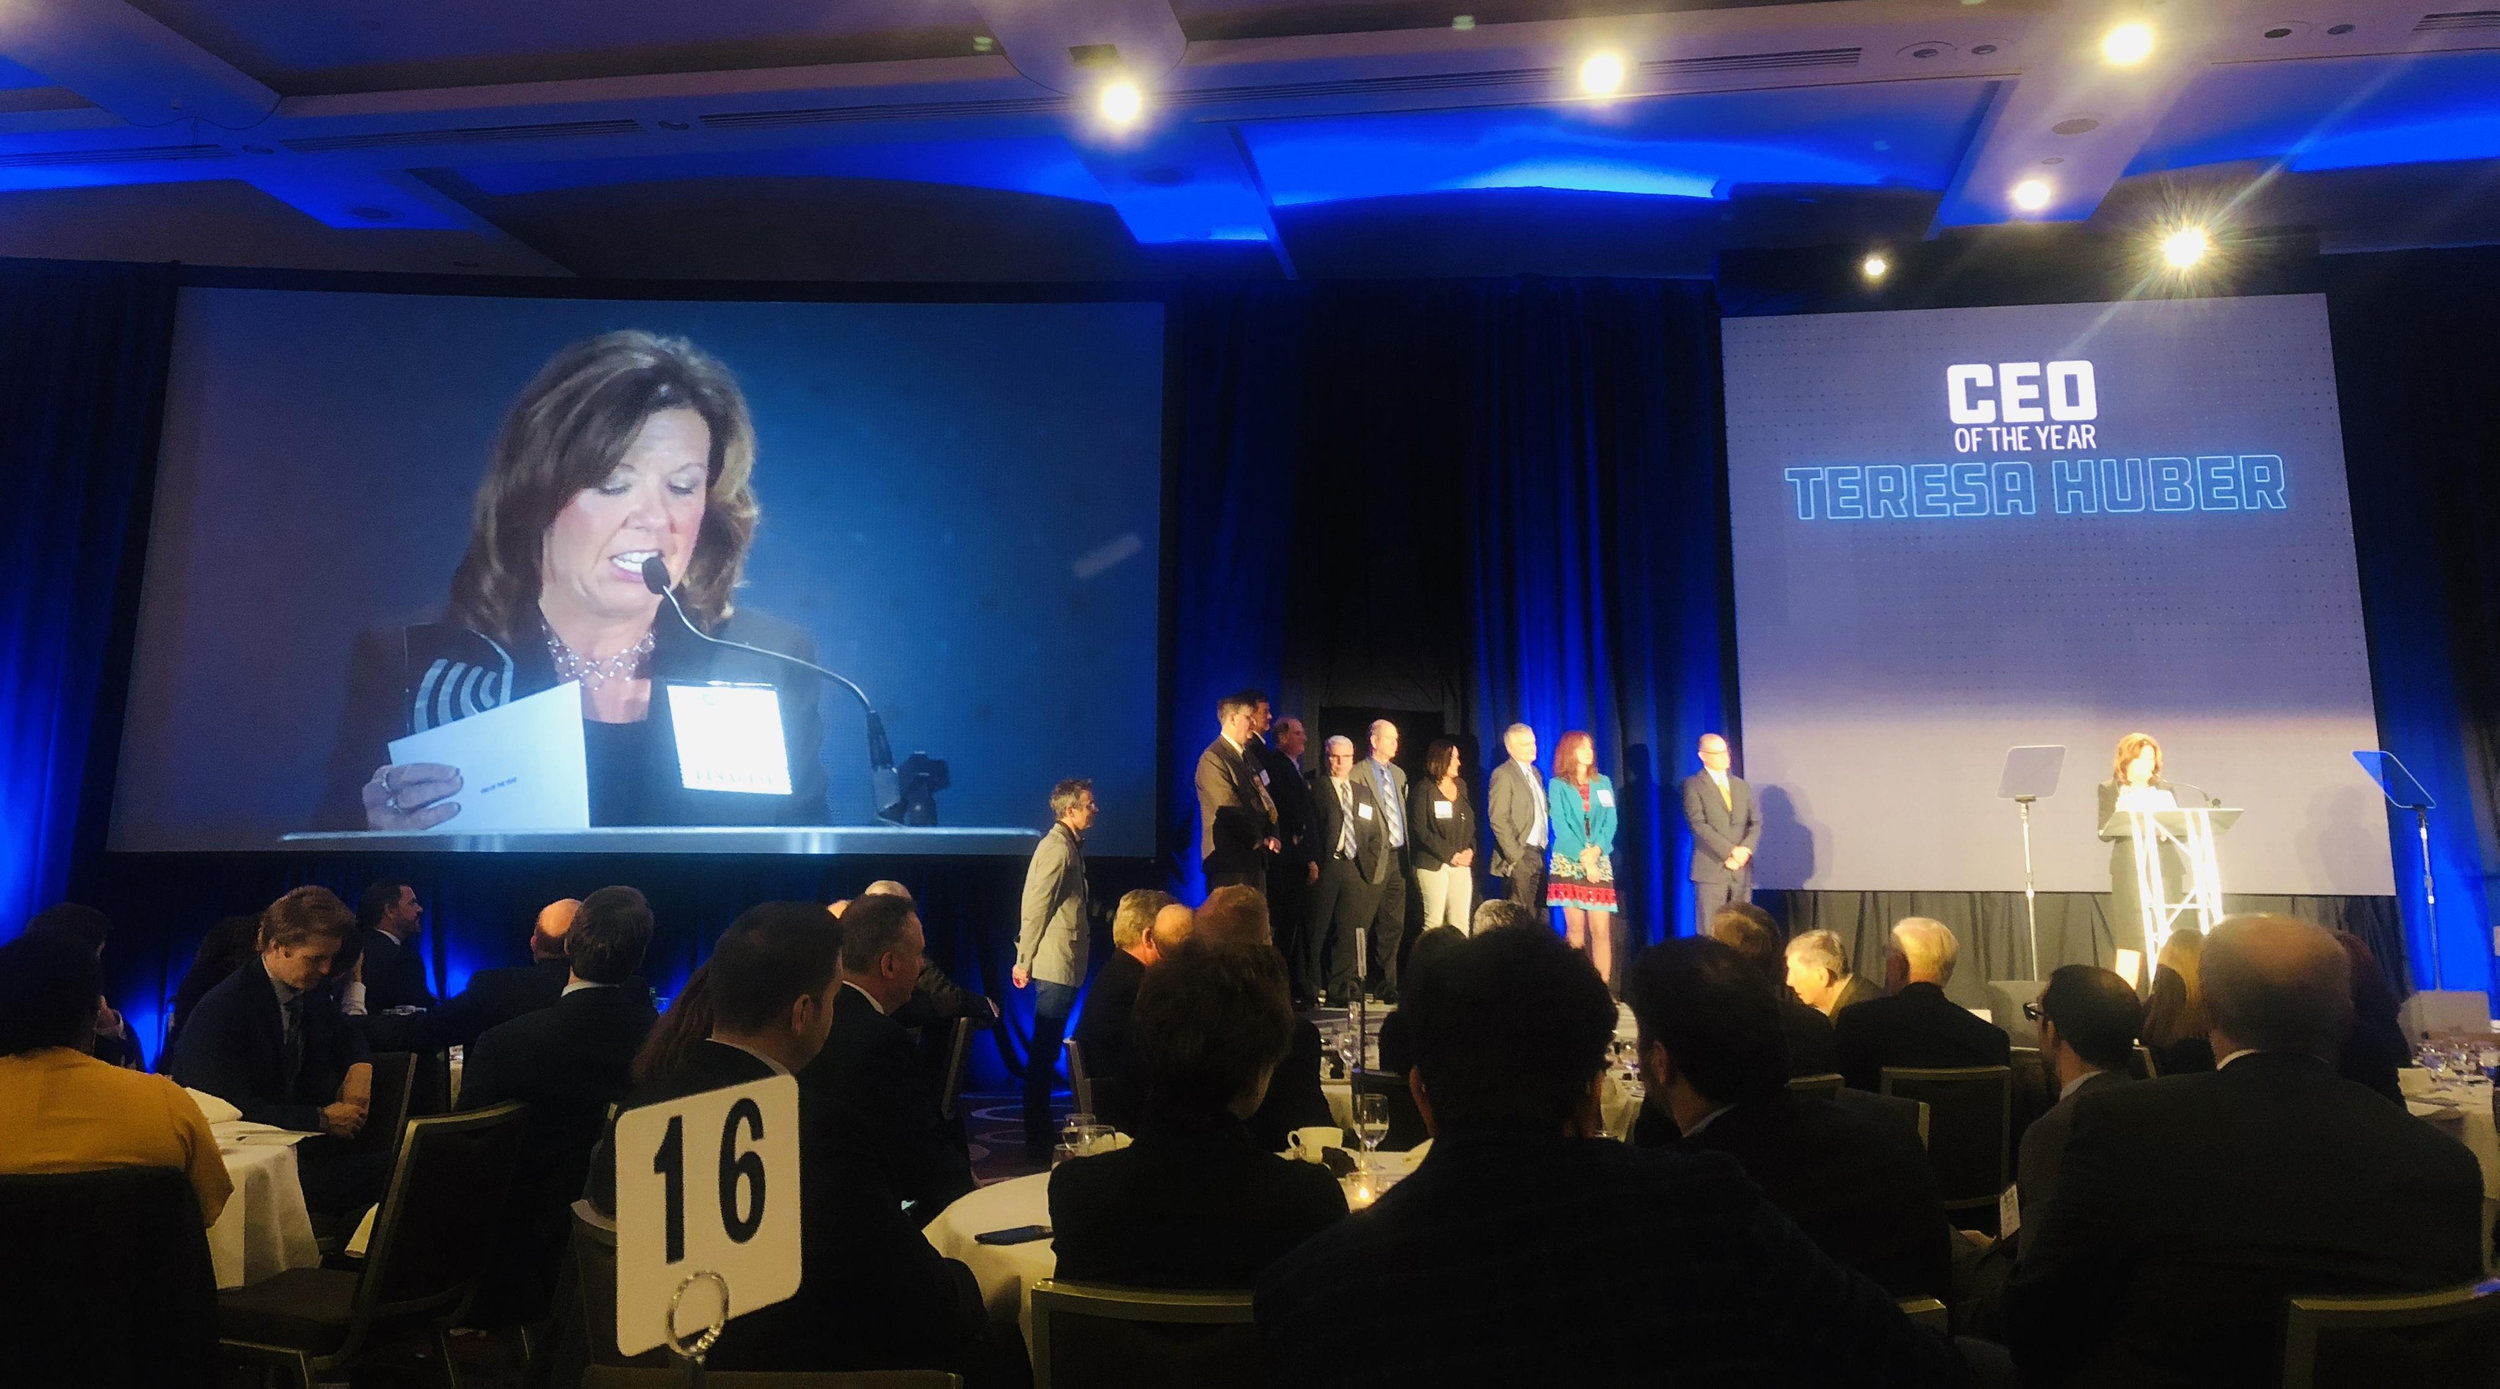 Joined onstage by several Intervala team members, Teresa Huber accepts her award as the 2018 CEO of the Year.